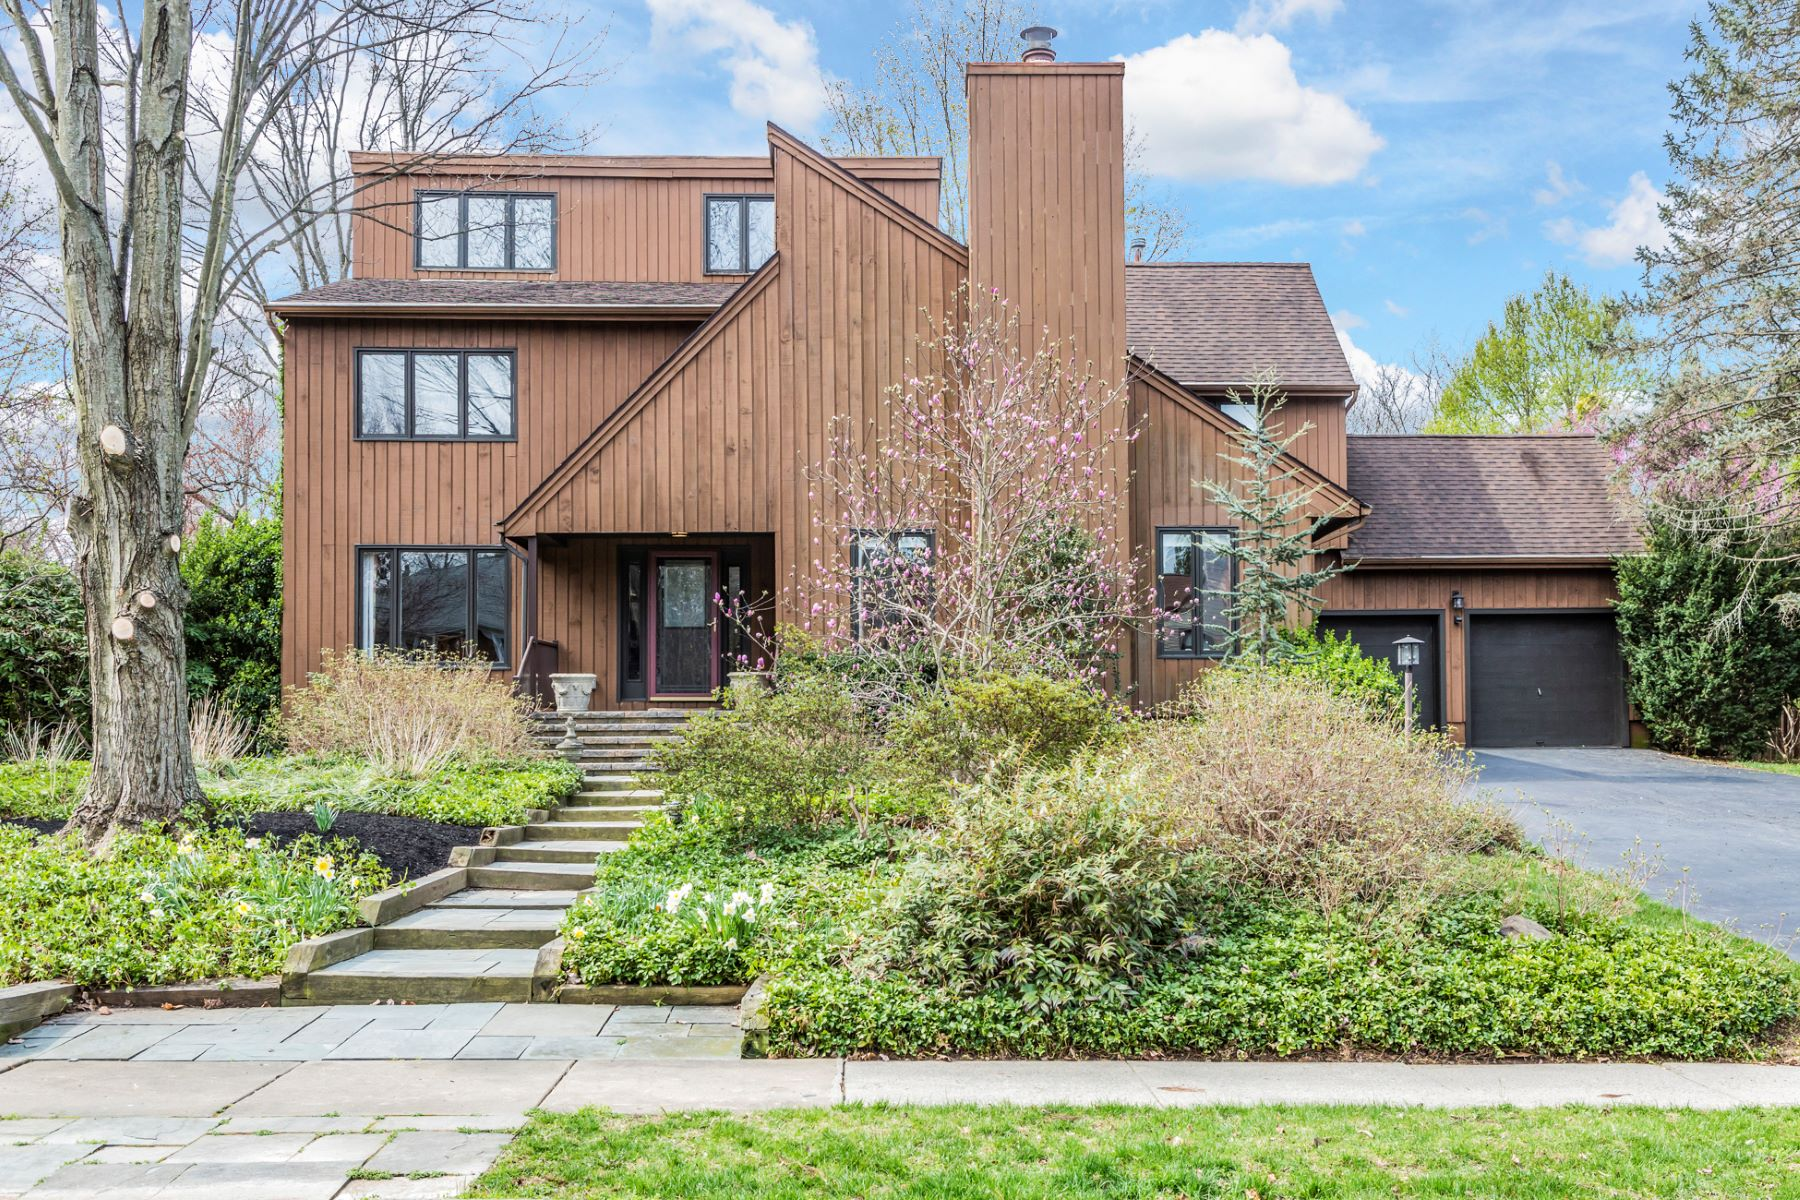 Single Family Home for Sale at Striking Contemporary in Admired Woodlane Estates - Lawrence Township 3 West Laurel Wood Drive Lawrenceville, New Jersey 08648 United States